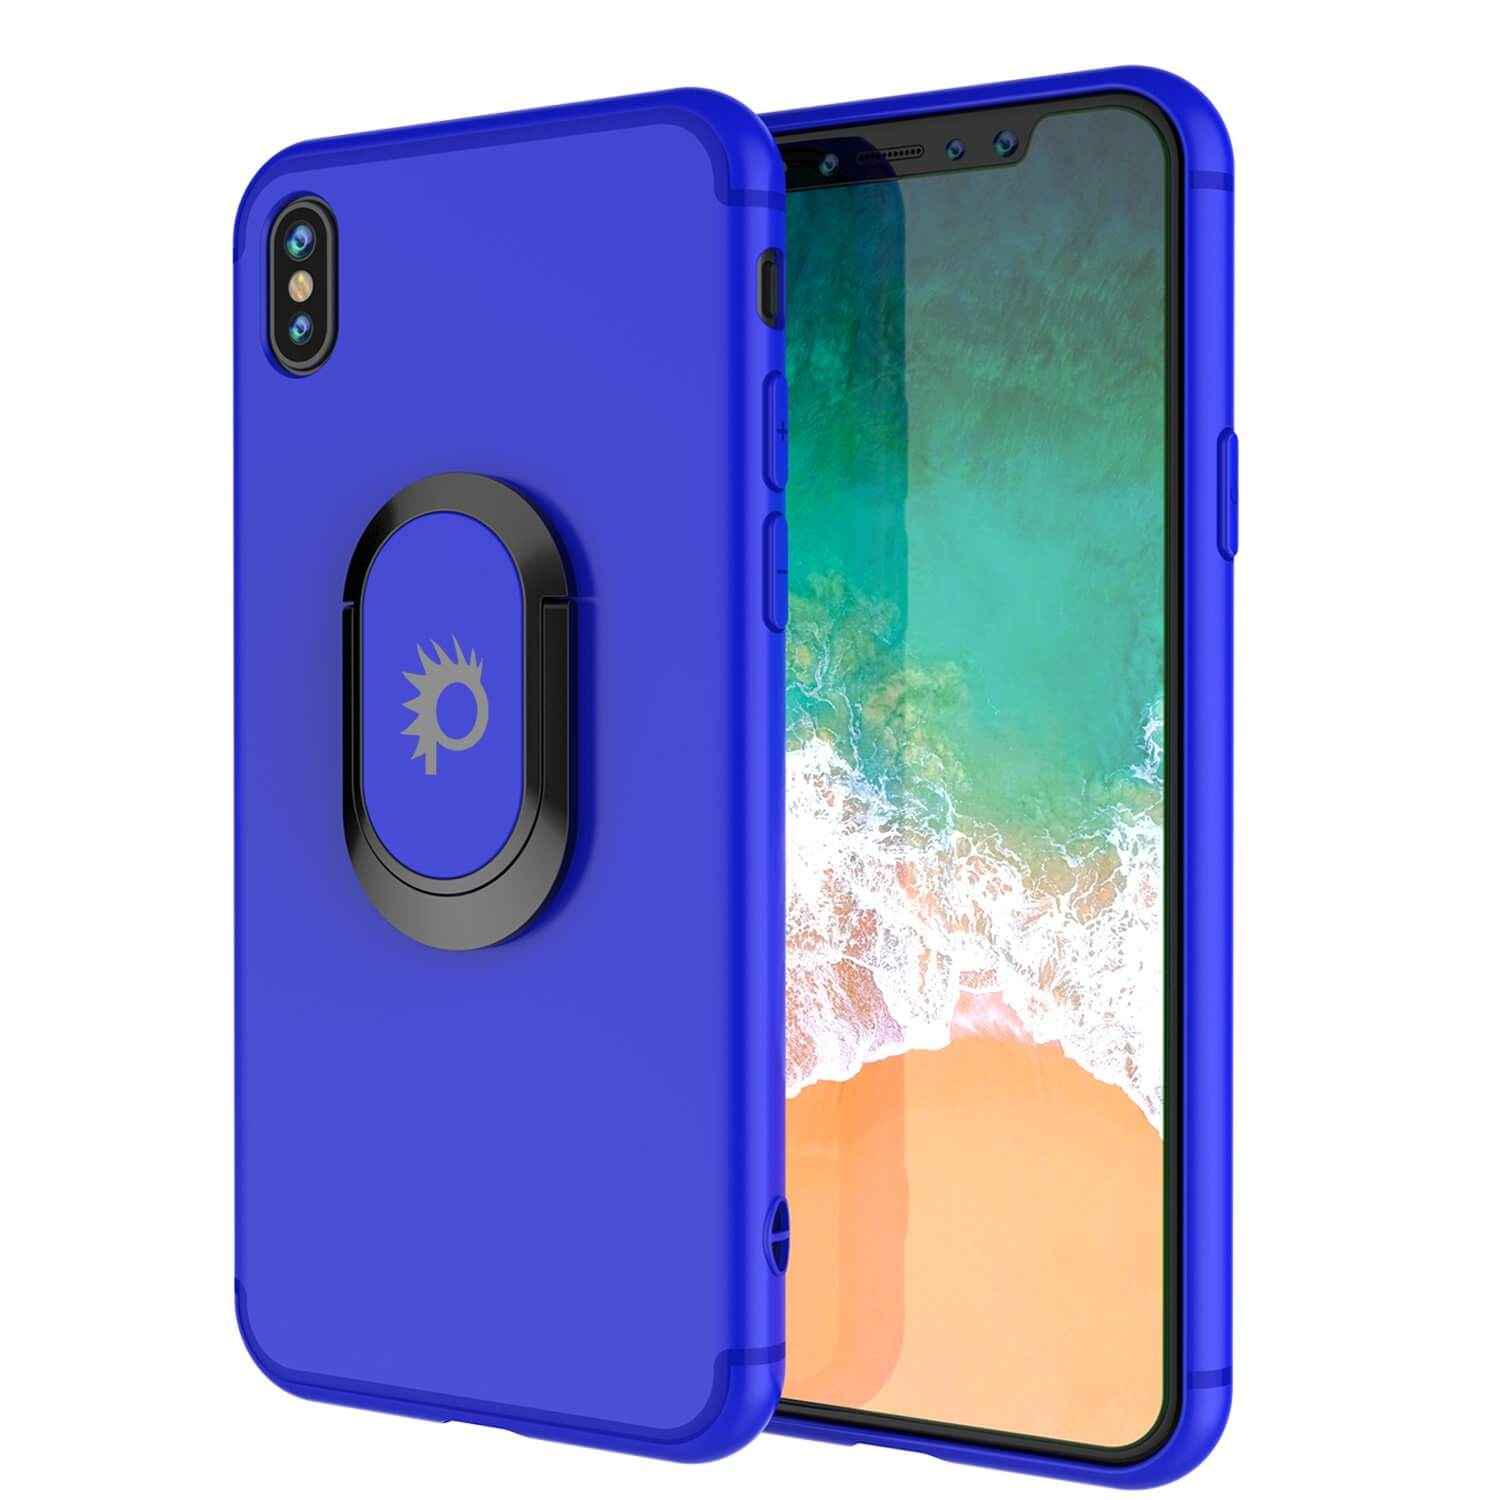 iPhone XS Case, Punkcase Magnetix Protective TPU Cover W/ Kickstand, Tempered Glass Screen Protector [Blue]